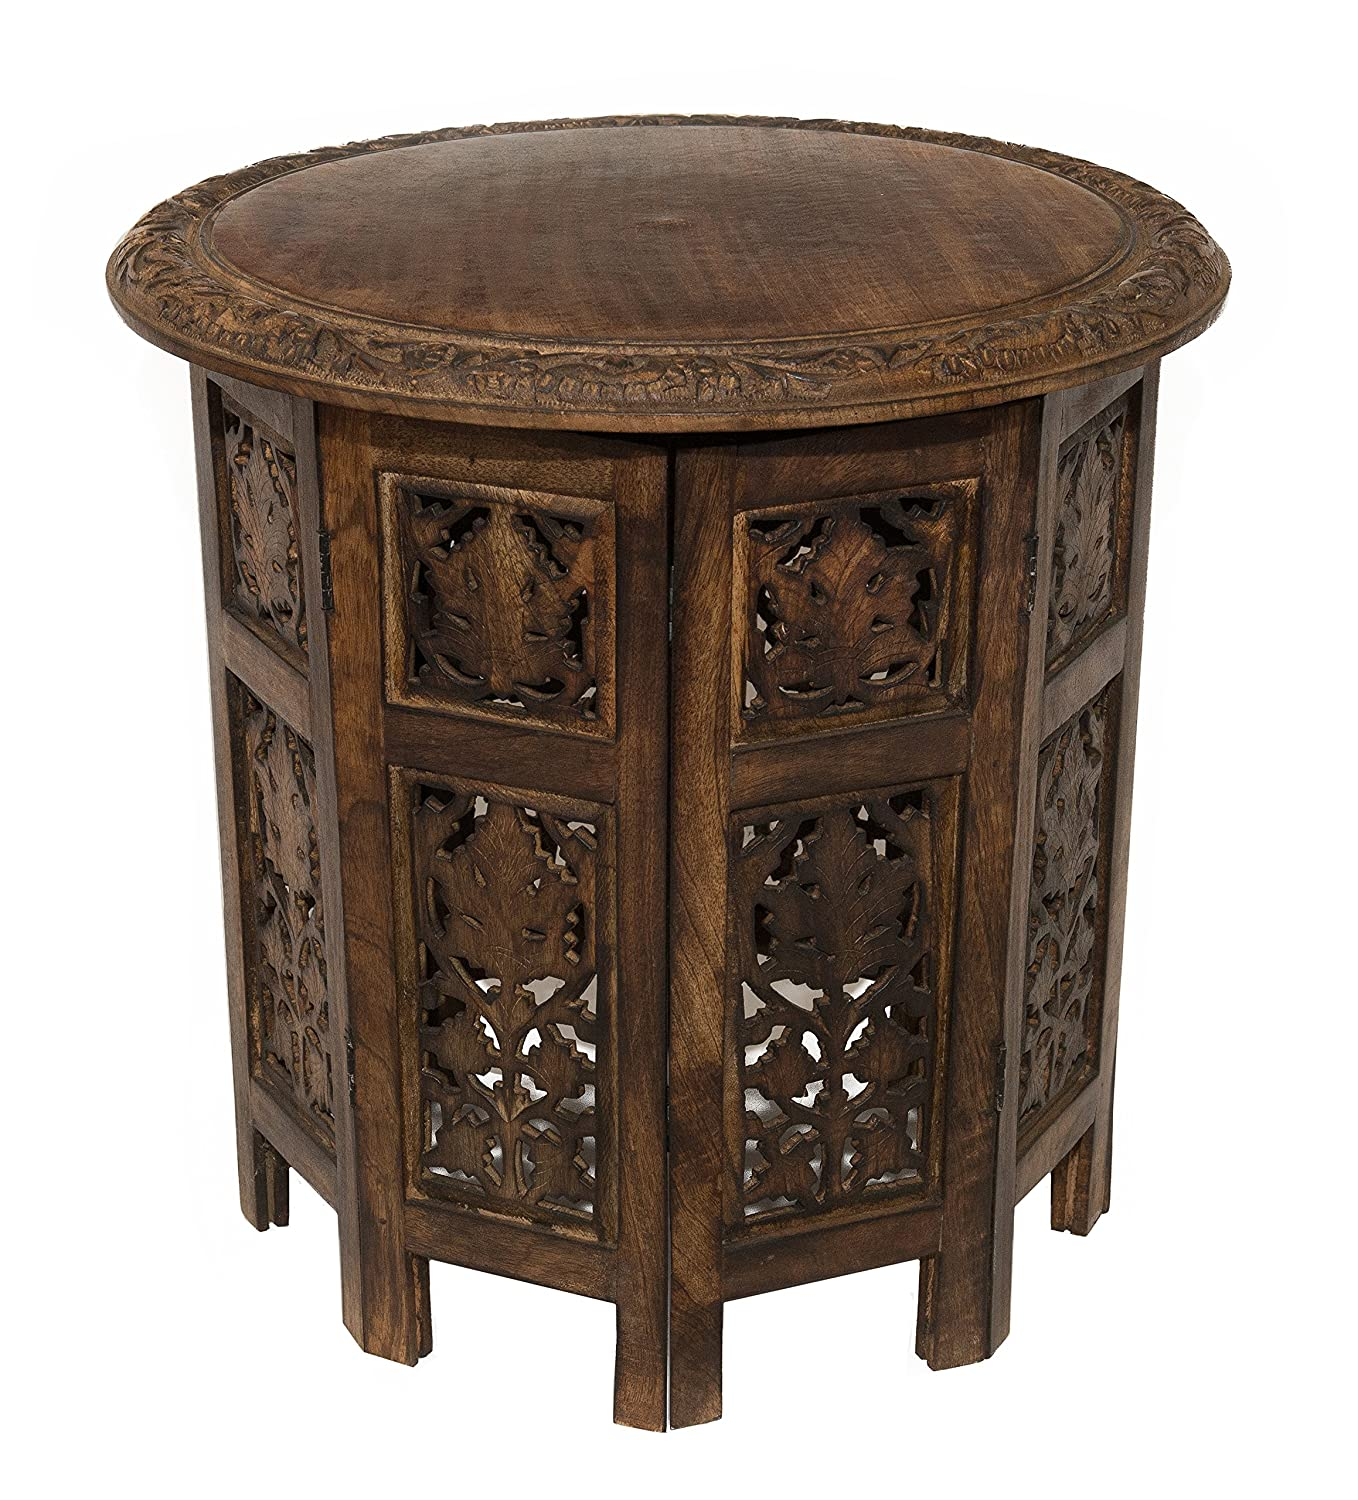 Amazon.com: Cotton Craft Jaipur Solid Wood Hand Carved Accent Coffee Table    18 Inch Round Top X 18 Inch High   Antique Brown: Kitchen U0026 Dining